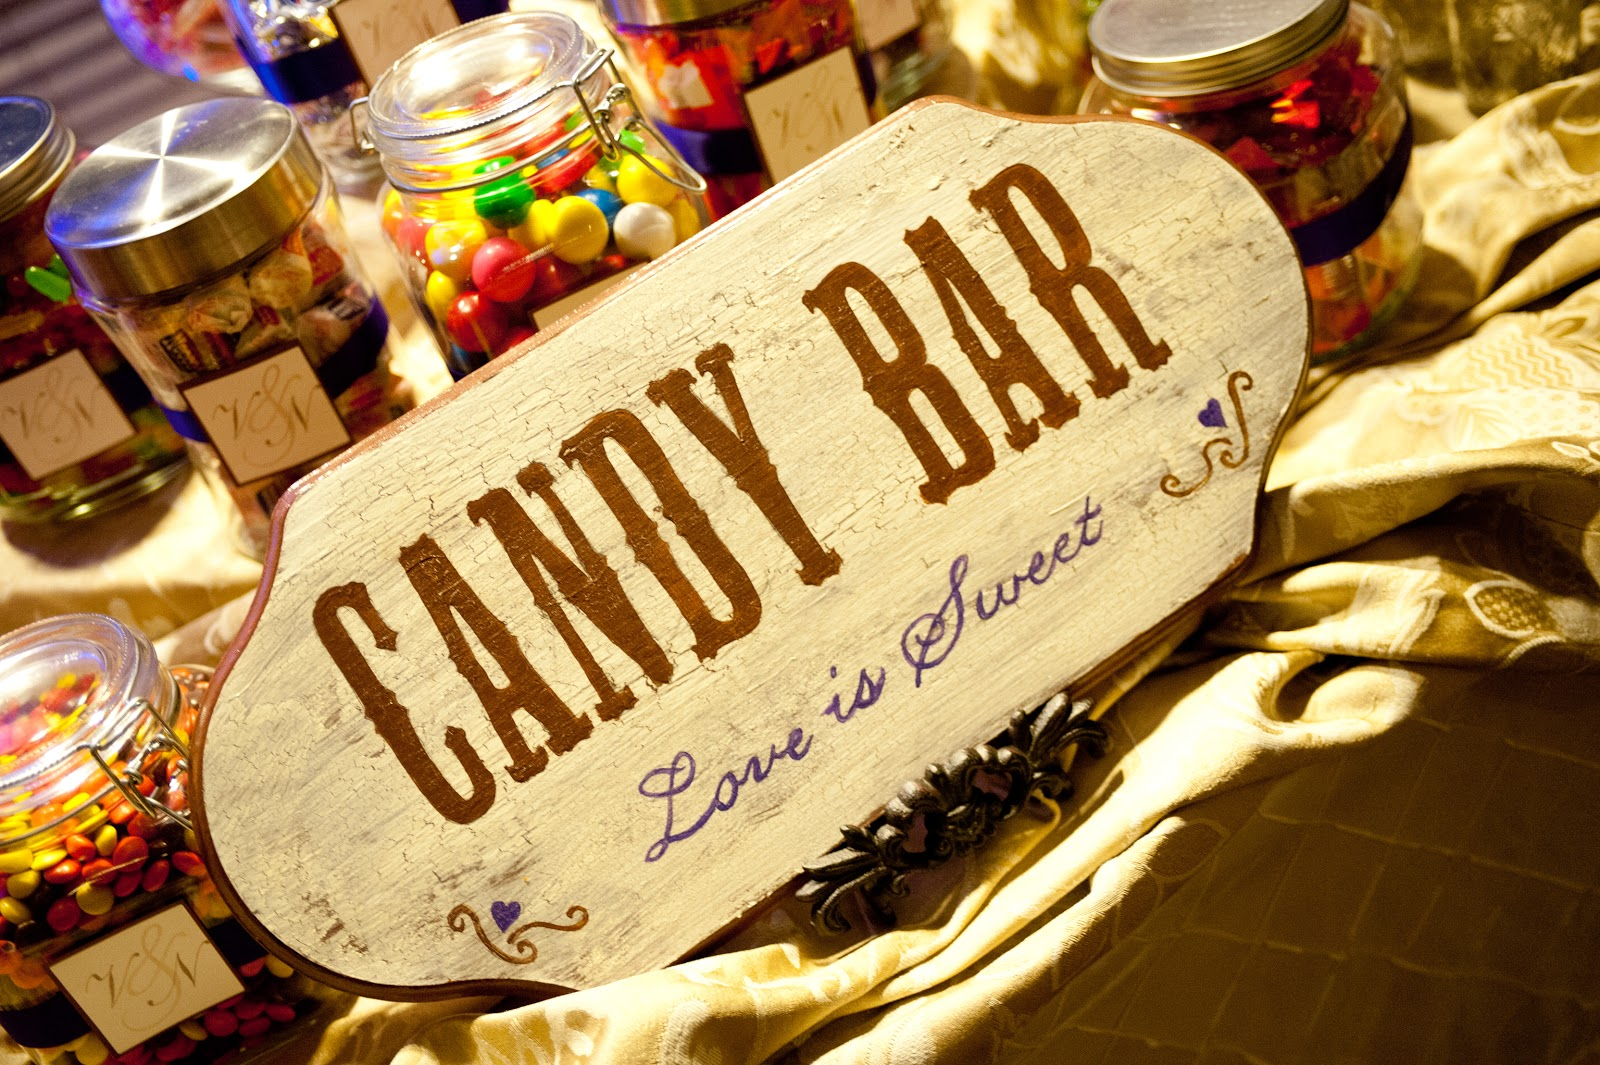 my honey bunch crackle sign diy candy bar. Black Bedroom Furniture Sets. Home Design Ideas